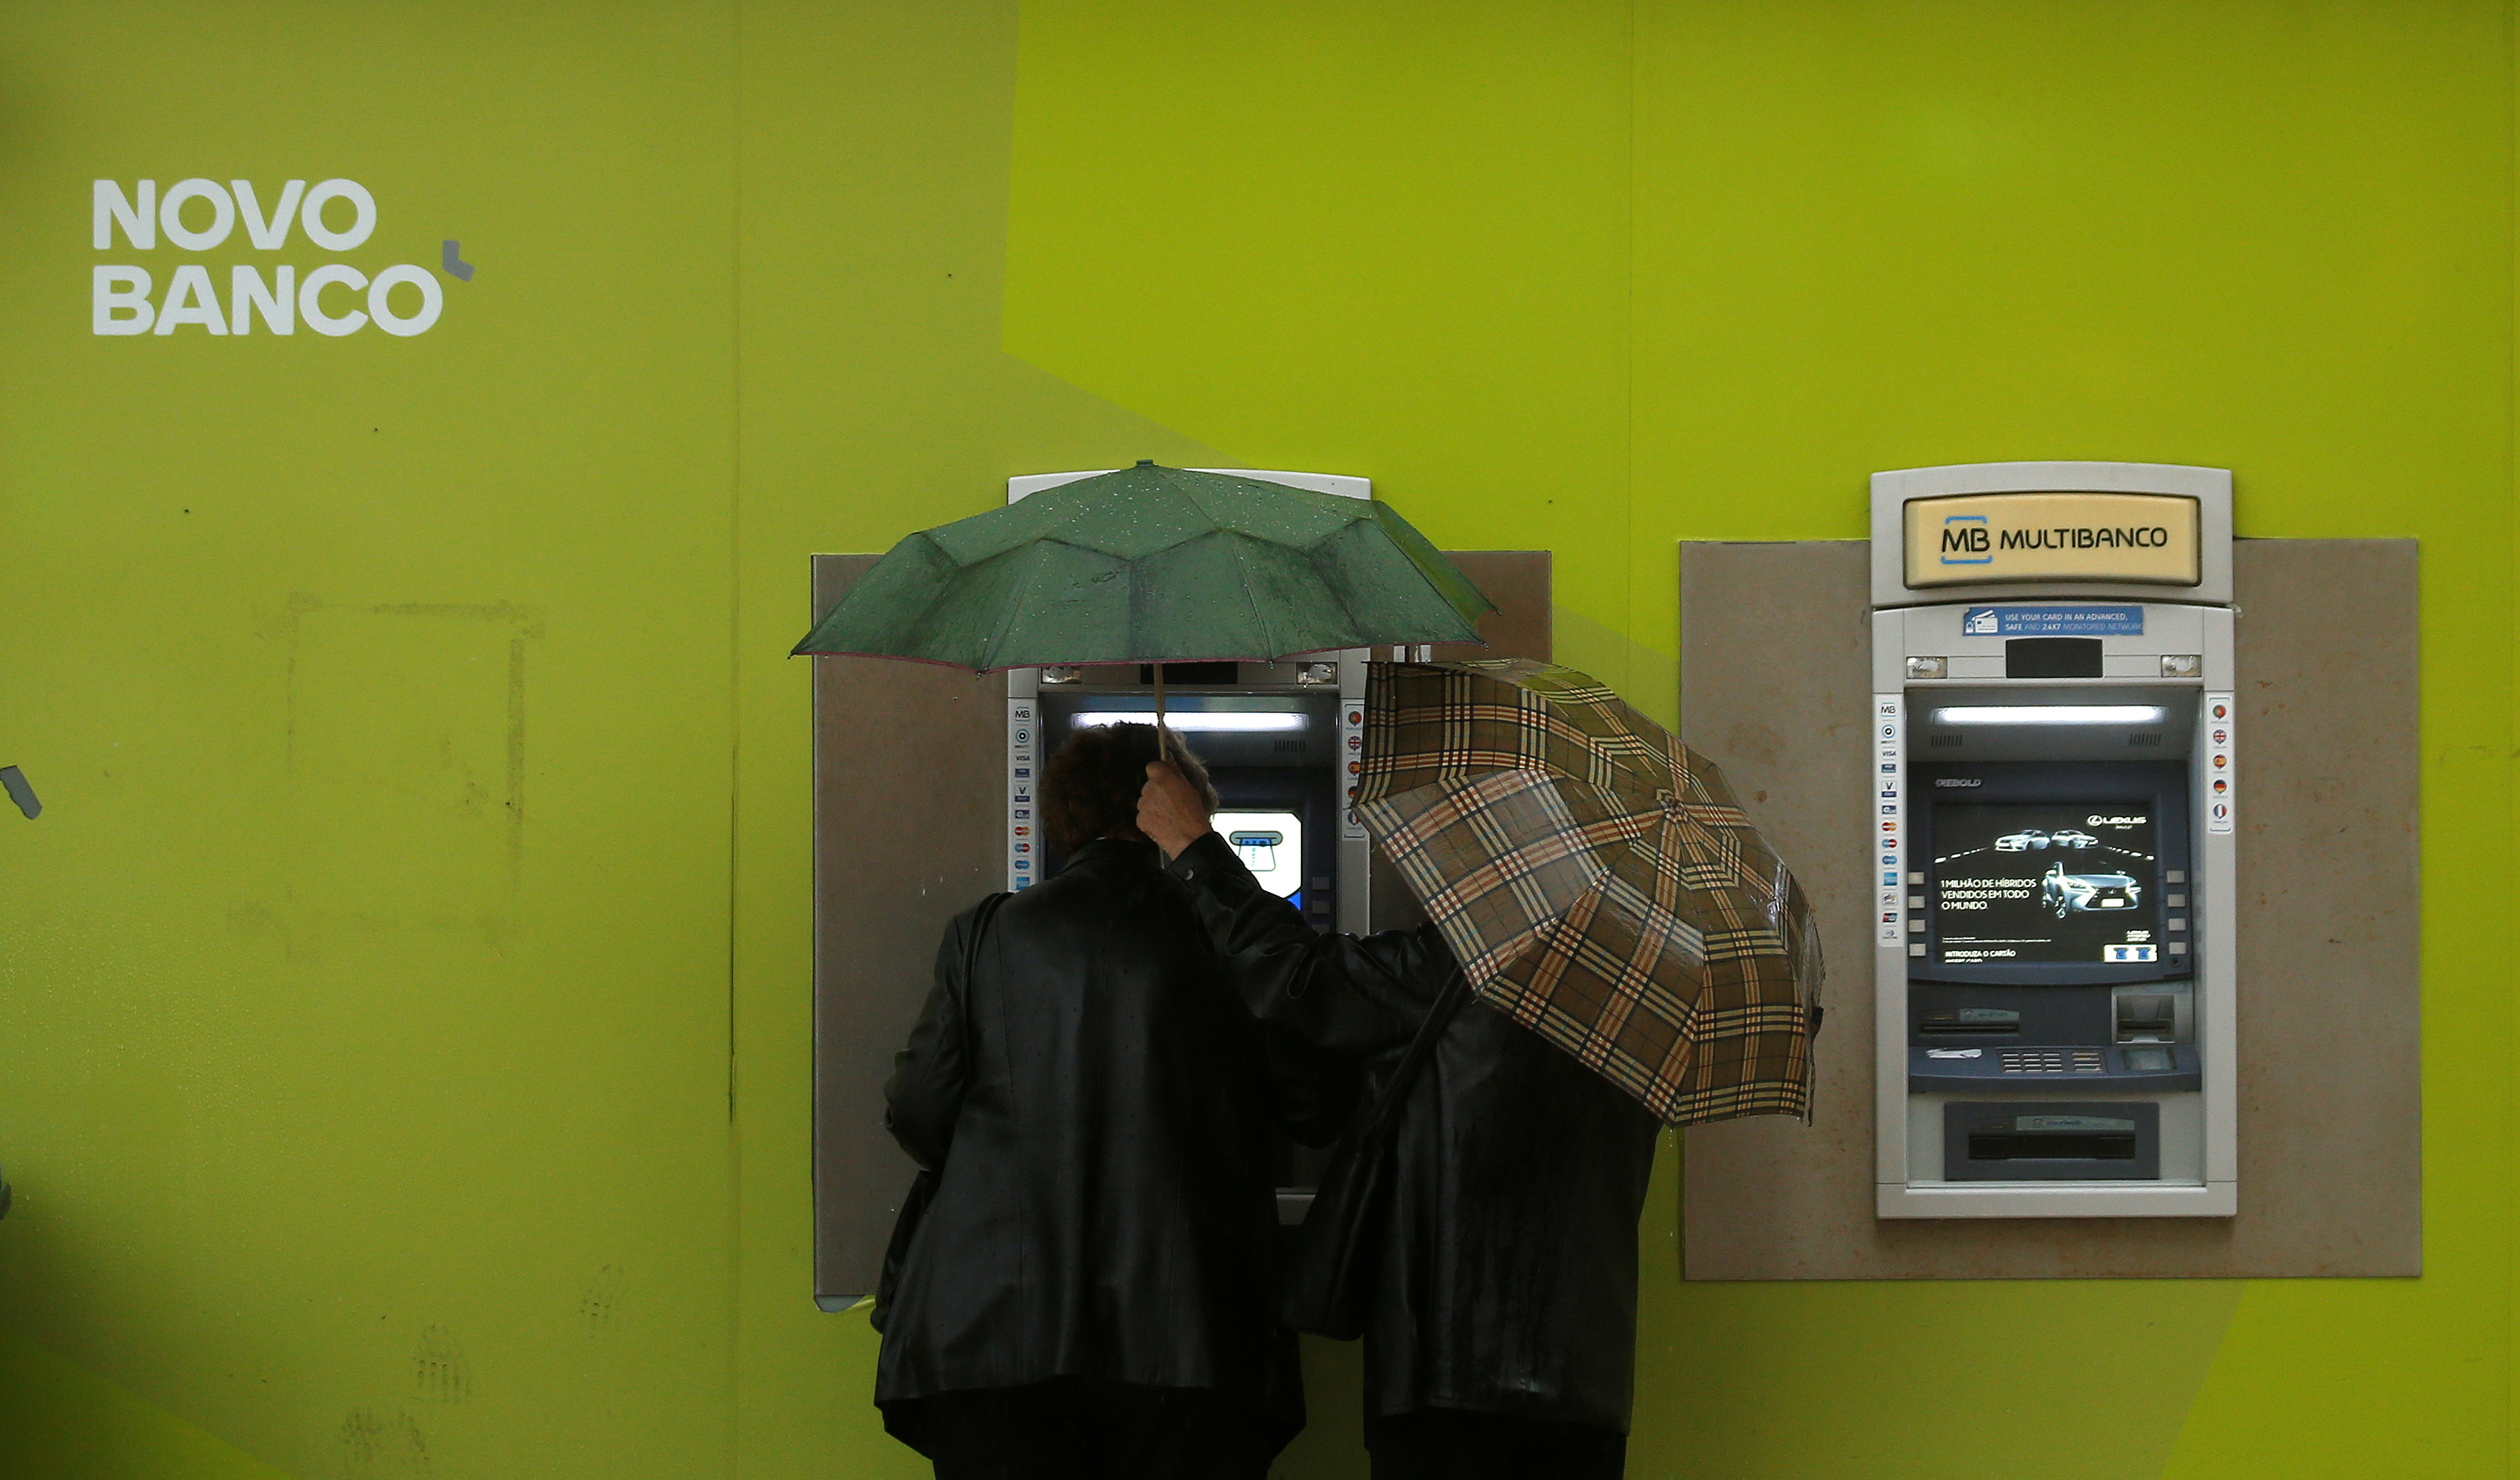 People use ATM machines at a Novo Banco branch in downtown Lisbon, Portugal, May 11, 2016.  REUTERS/Rafael Marchante - RTX2E0LM